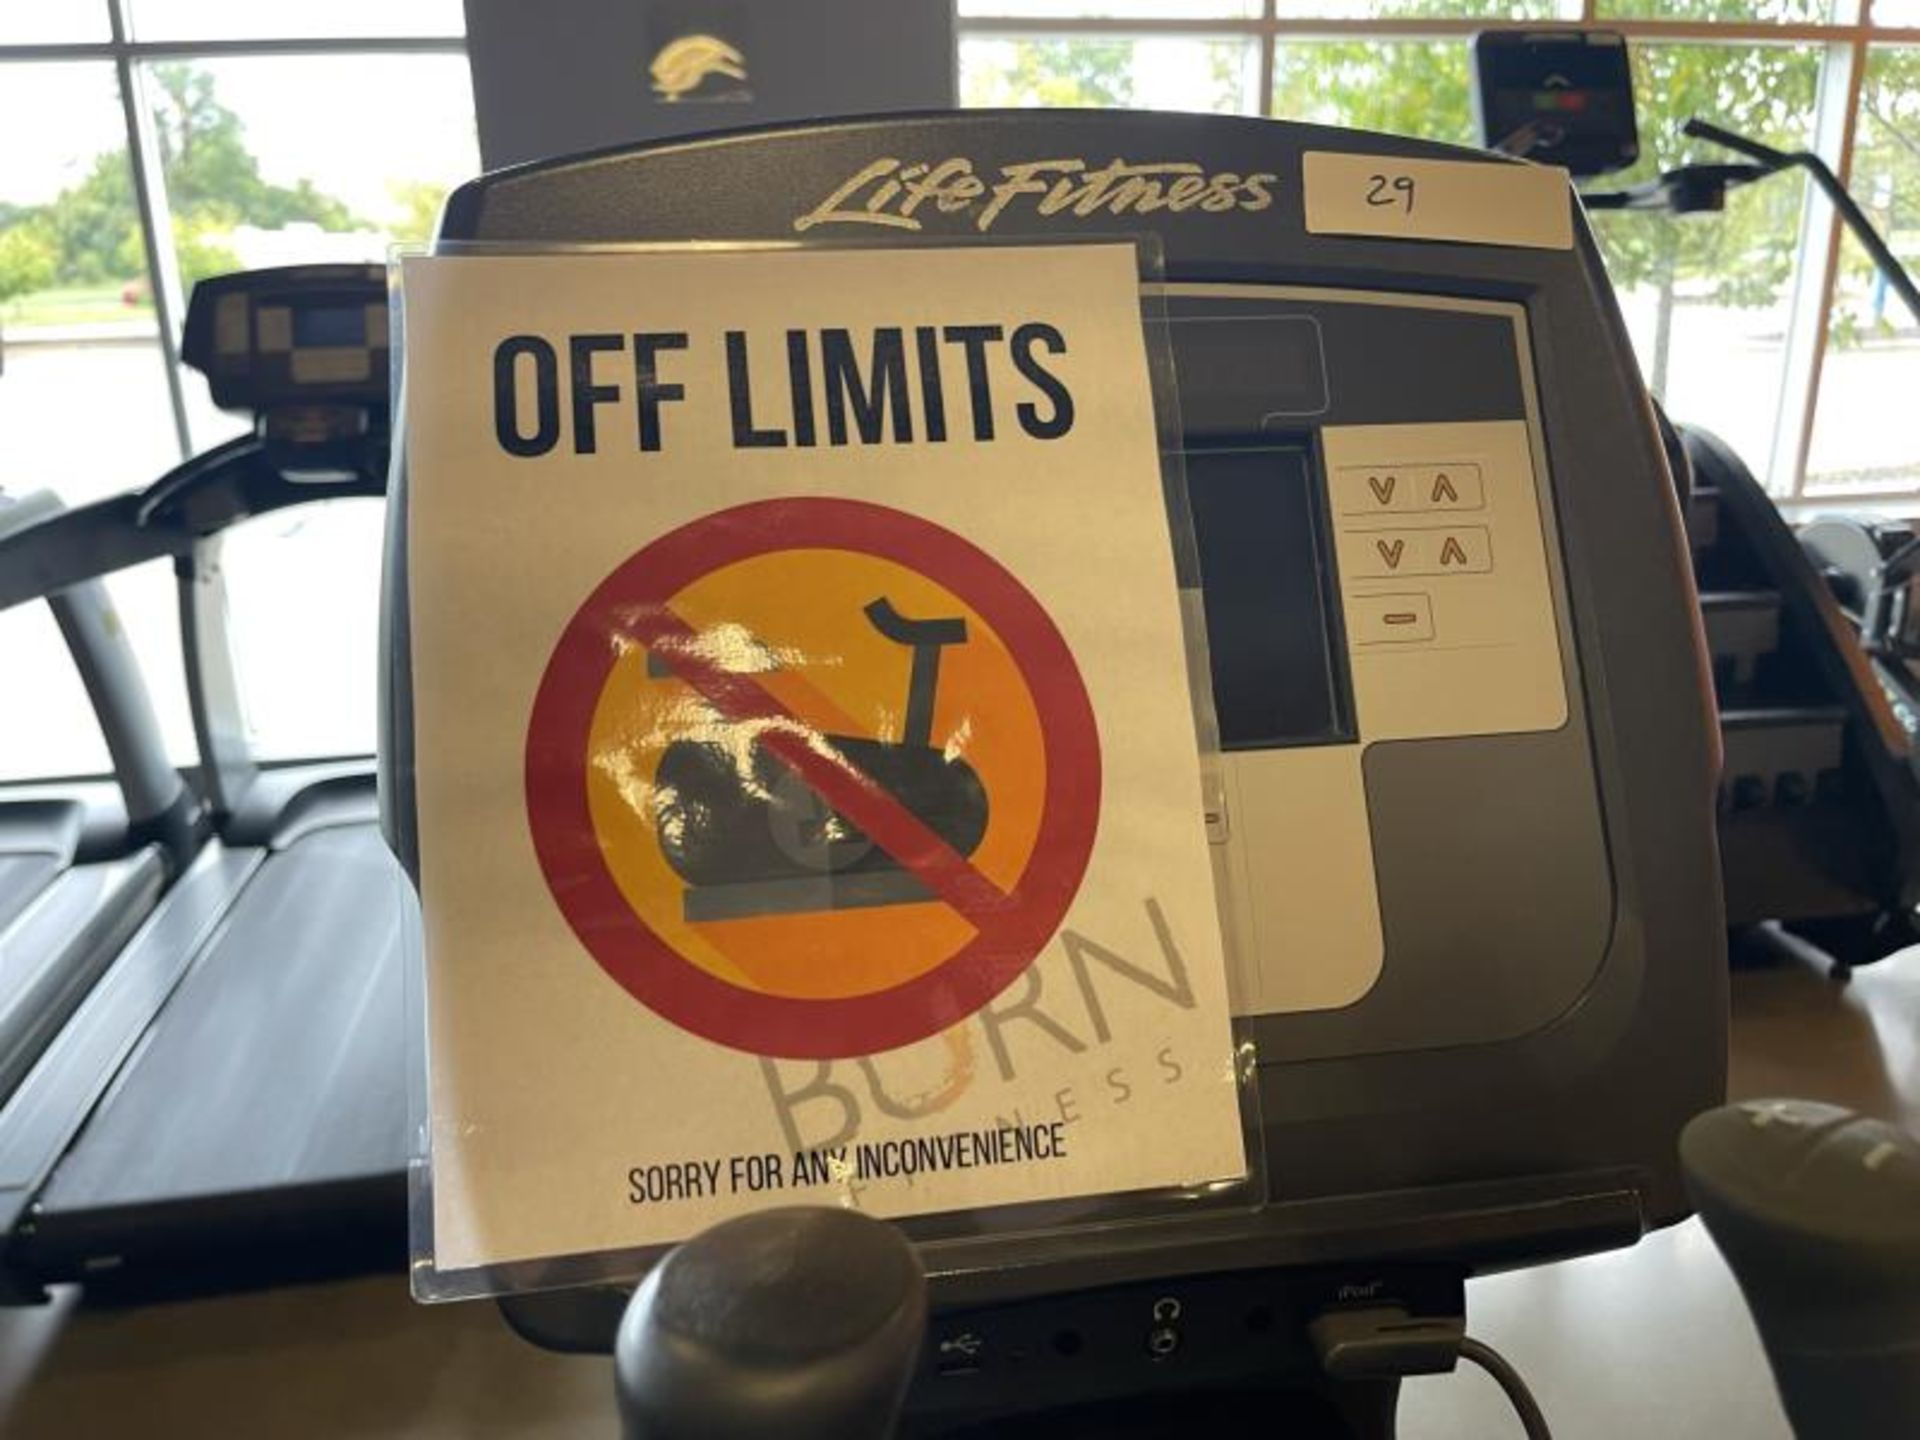 Life Fitness Elliptical M: 95X Has Out Of Order Sign - Image 4 of 4